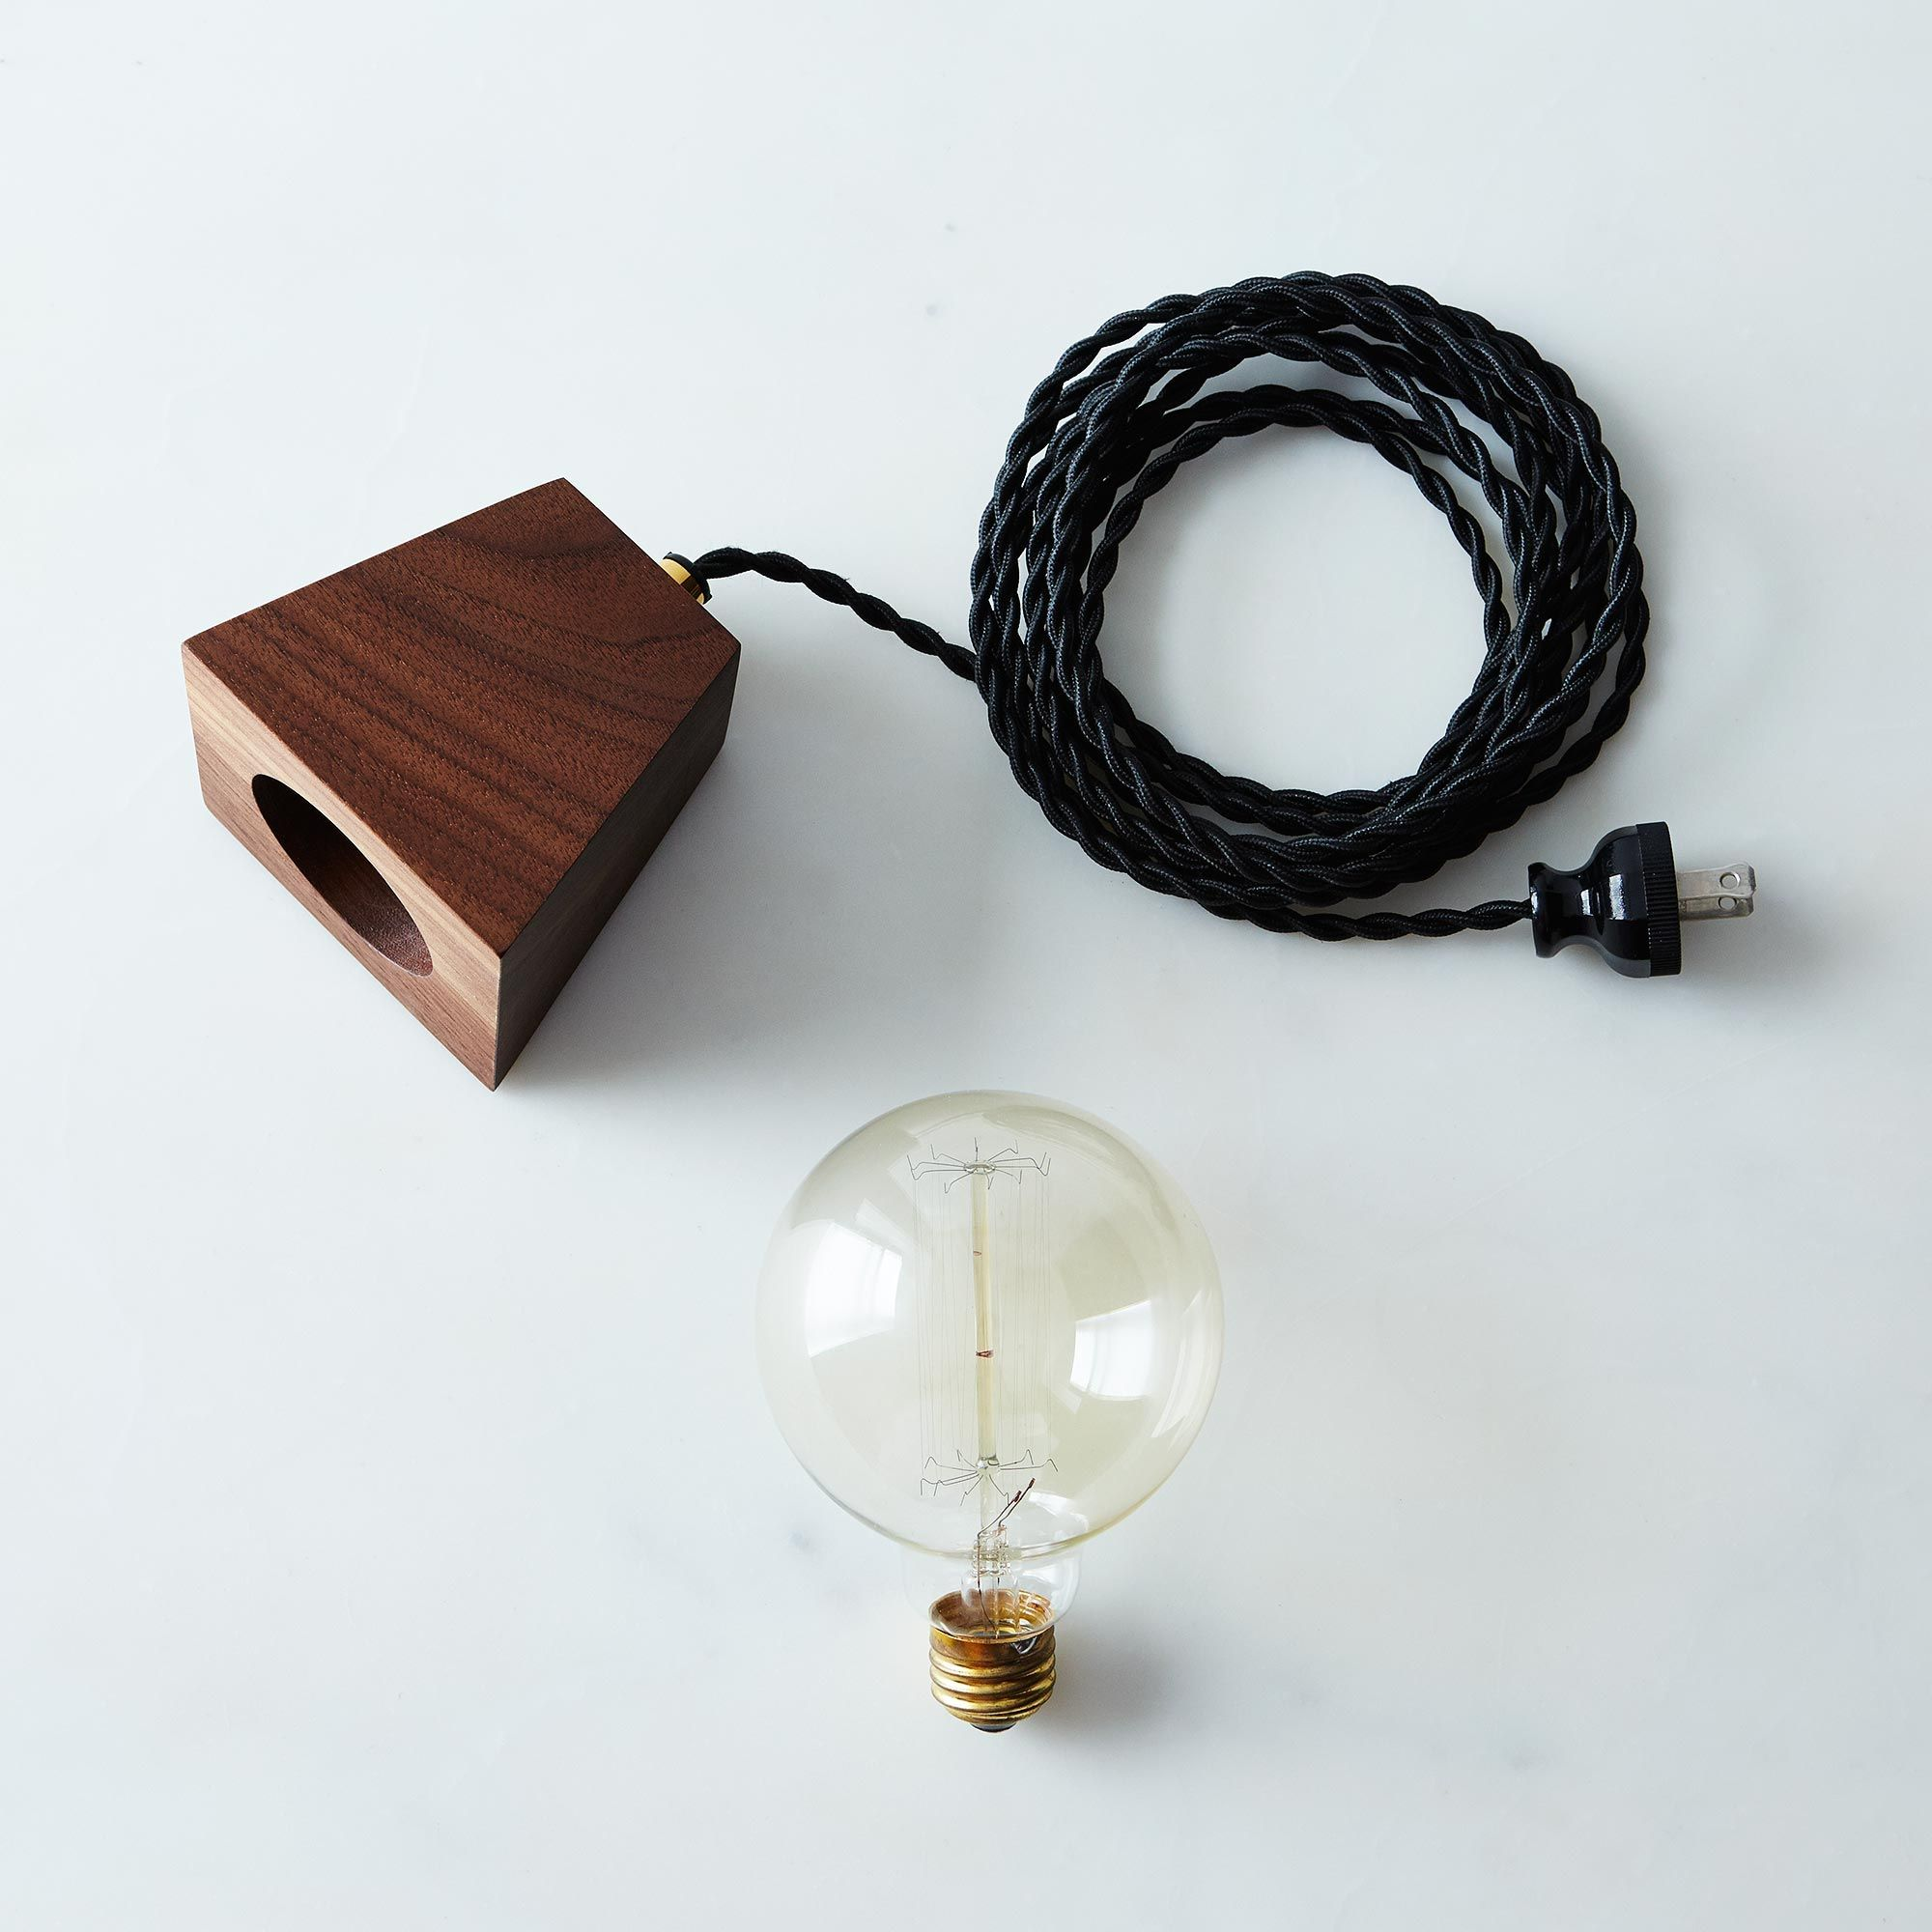 51544130 a0f7 11e5 a190 0ef7535729df  tight rope designs edison bulb wood block lamp walnut skinny bulb provisions mark weinberg 06 11 14 0802 silo